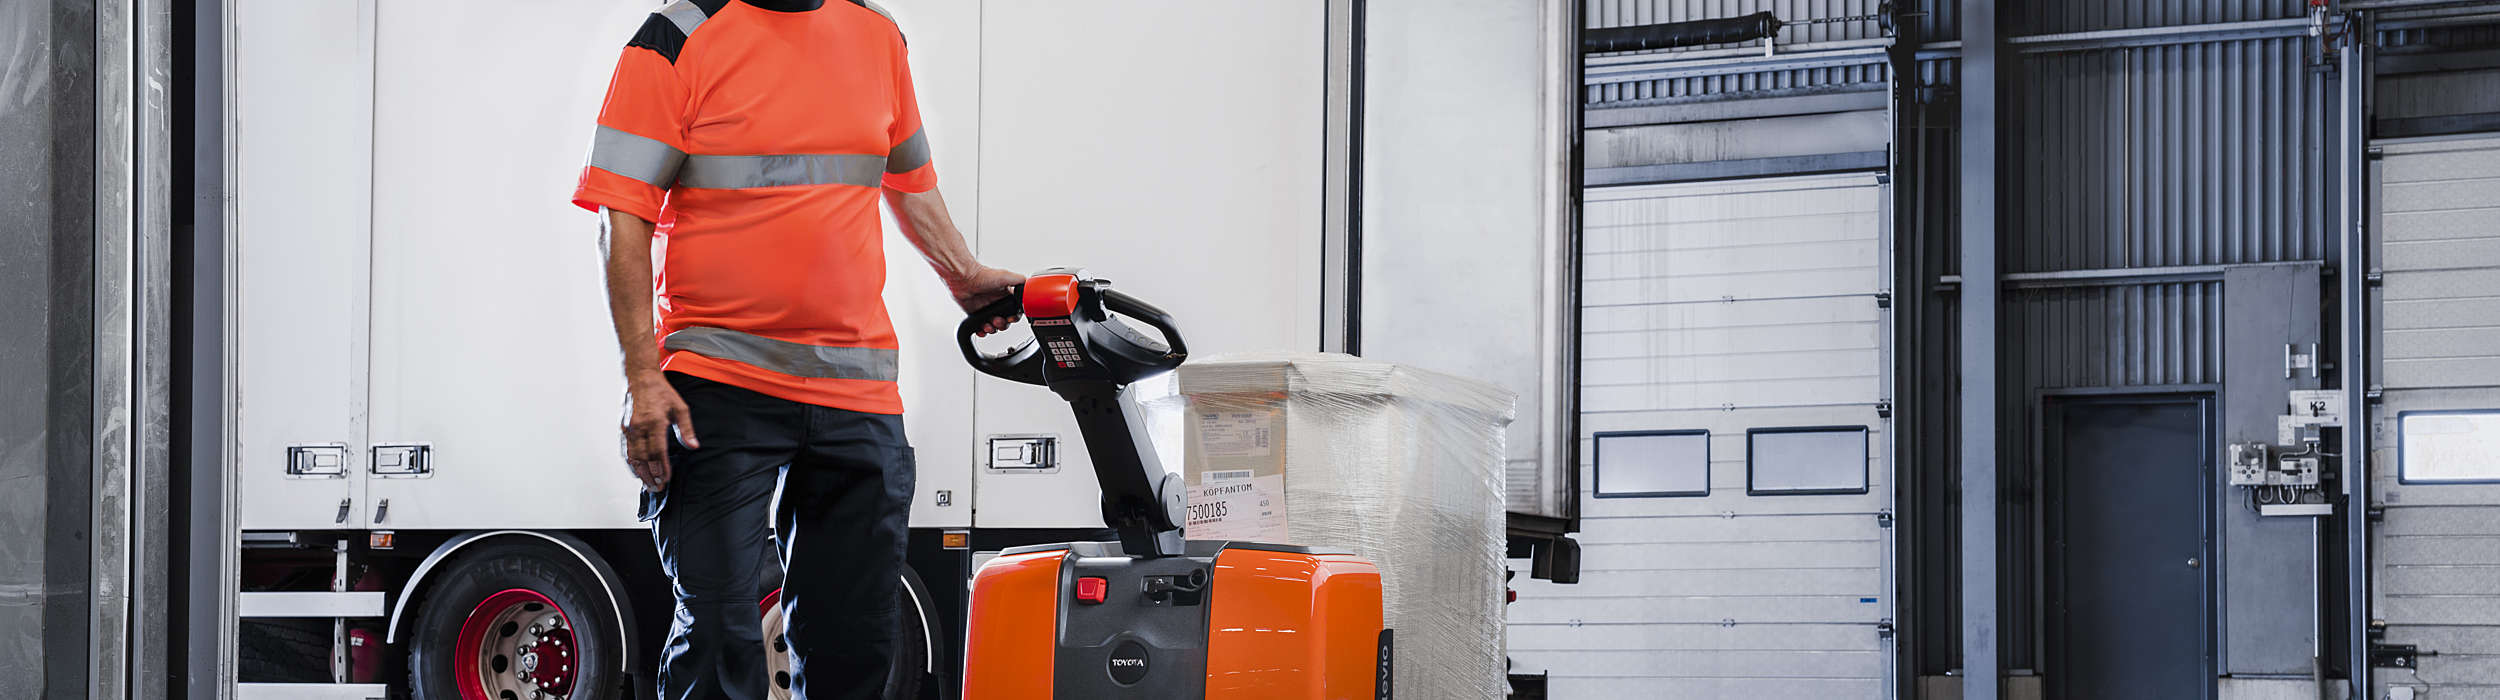 BT levio powered pallet truck used in transport